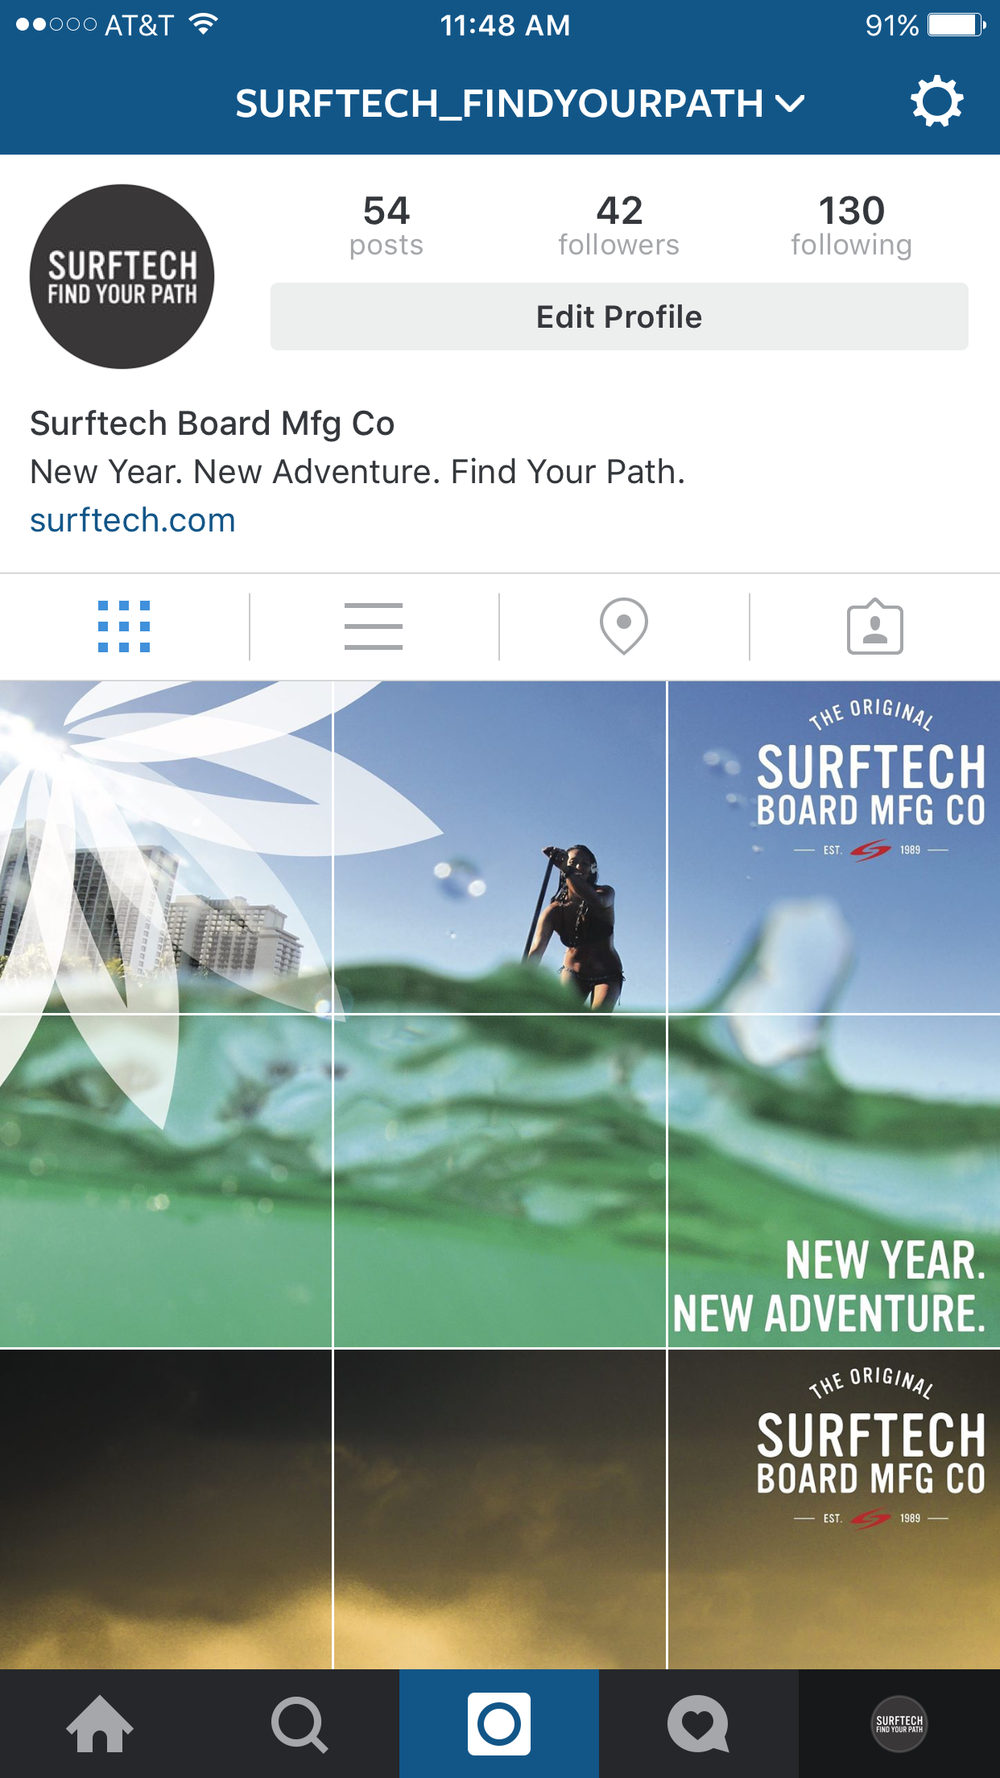 ACCOUNT FOR SURFTECH FIND YOUR PATH CAMPAIGN